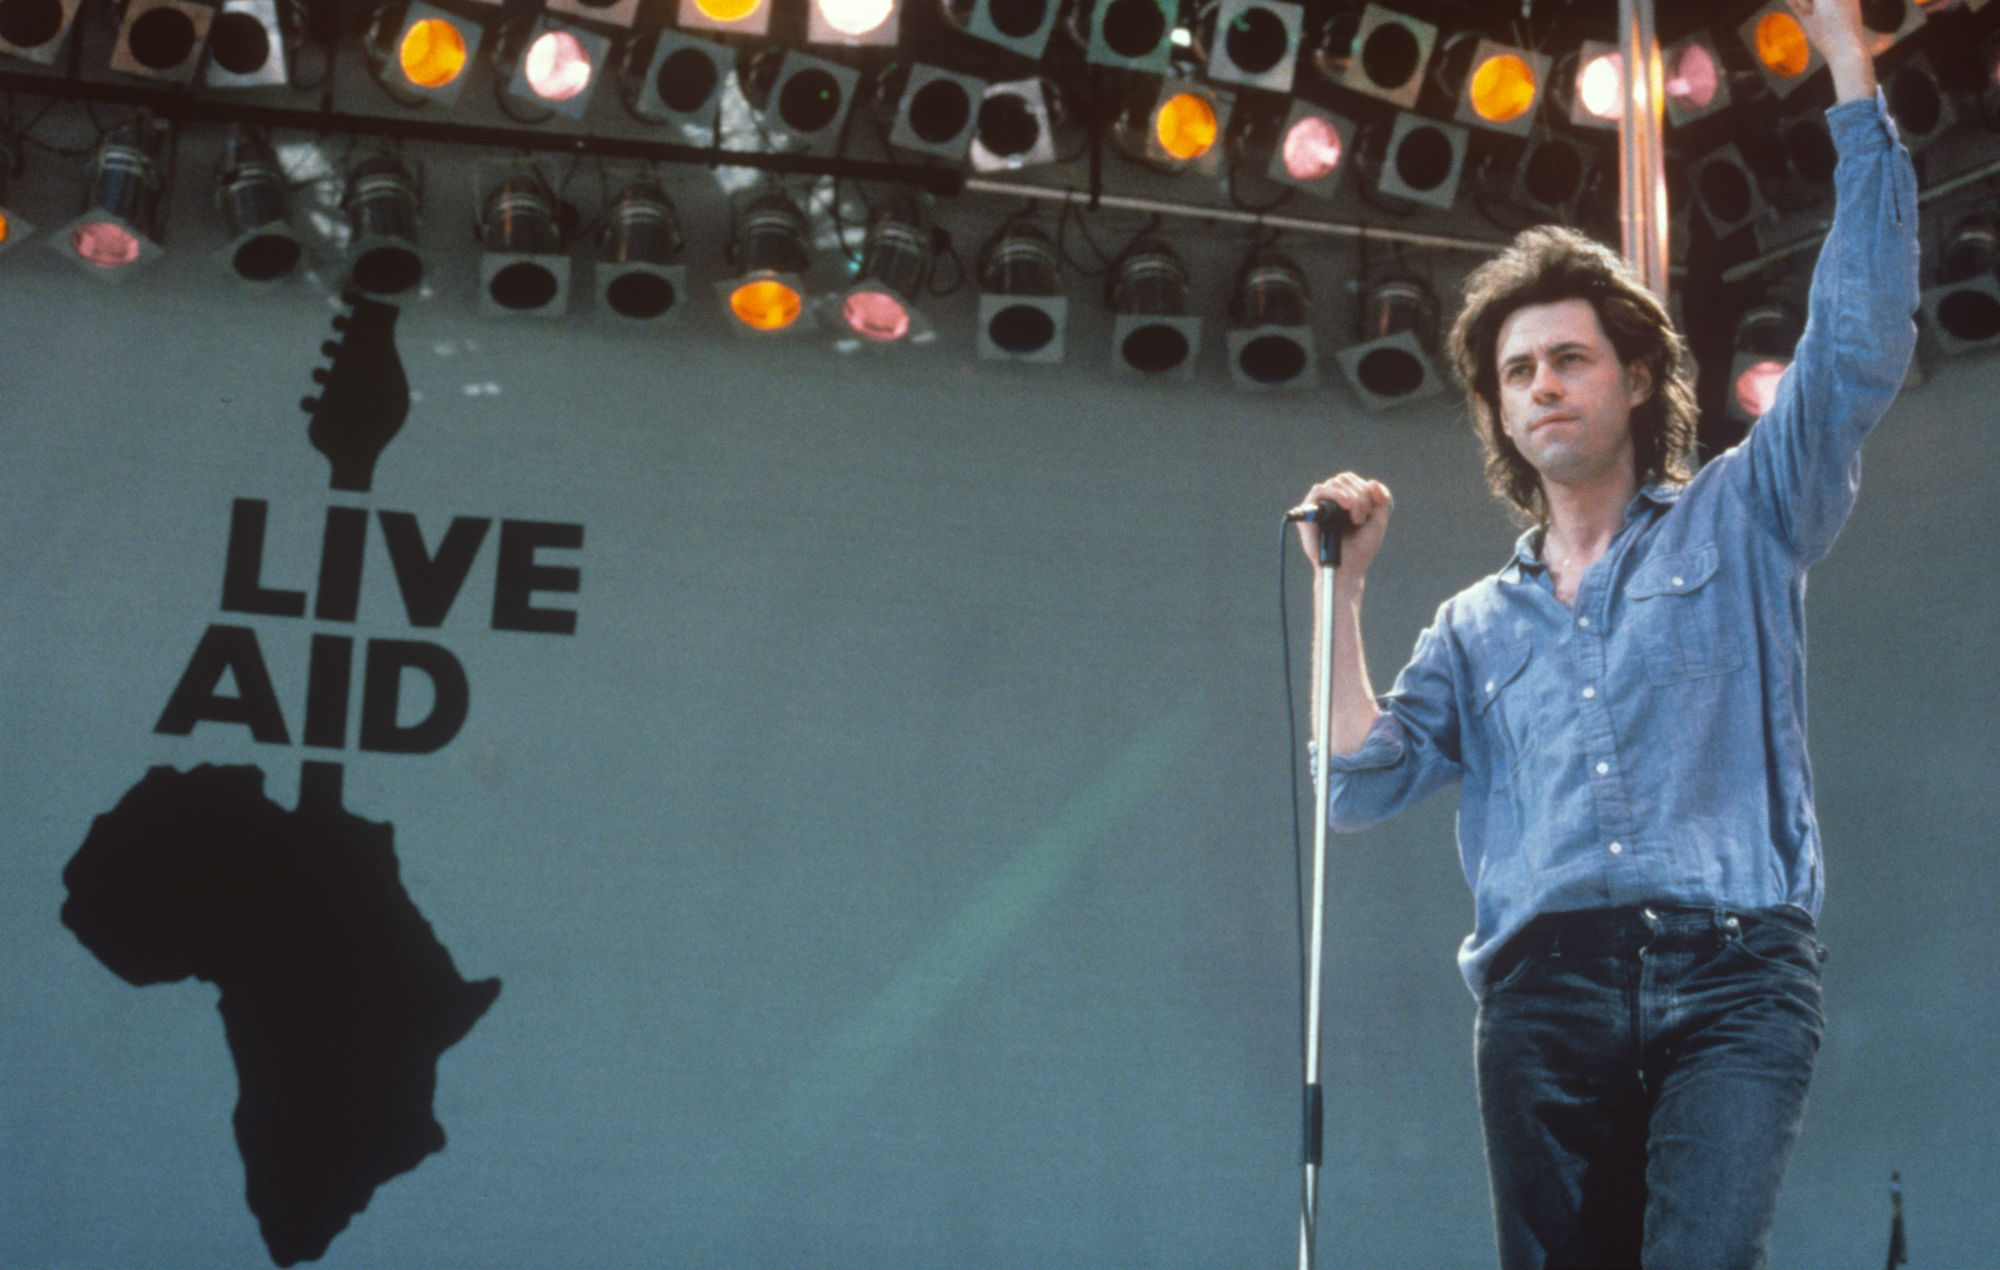 """Bob Geldof reflects on personal toll of Live Aid: """"It probably cost me my marriage"""""""